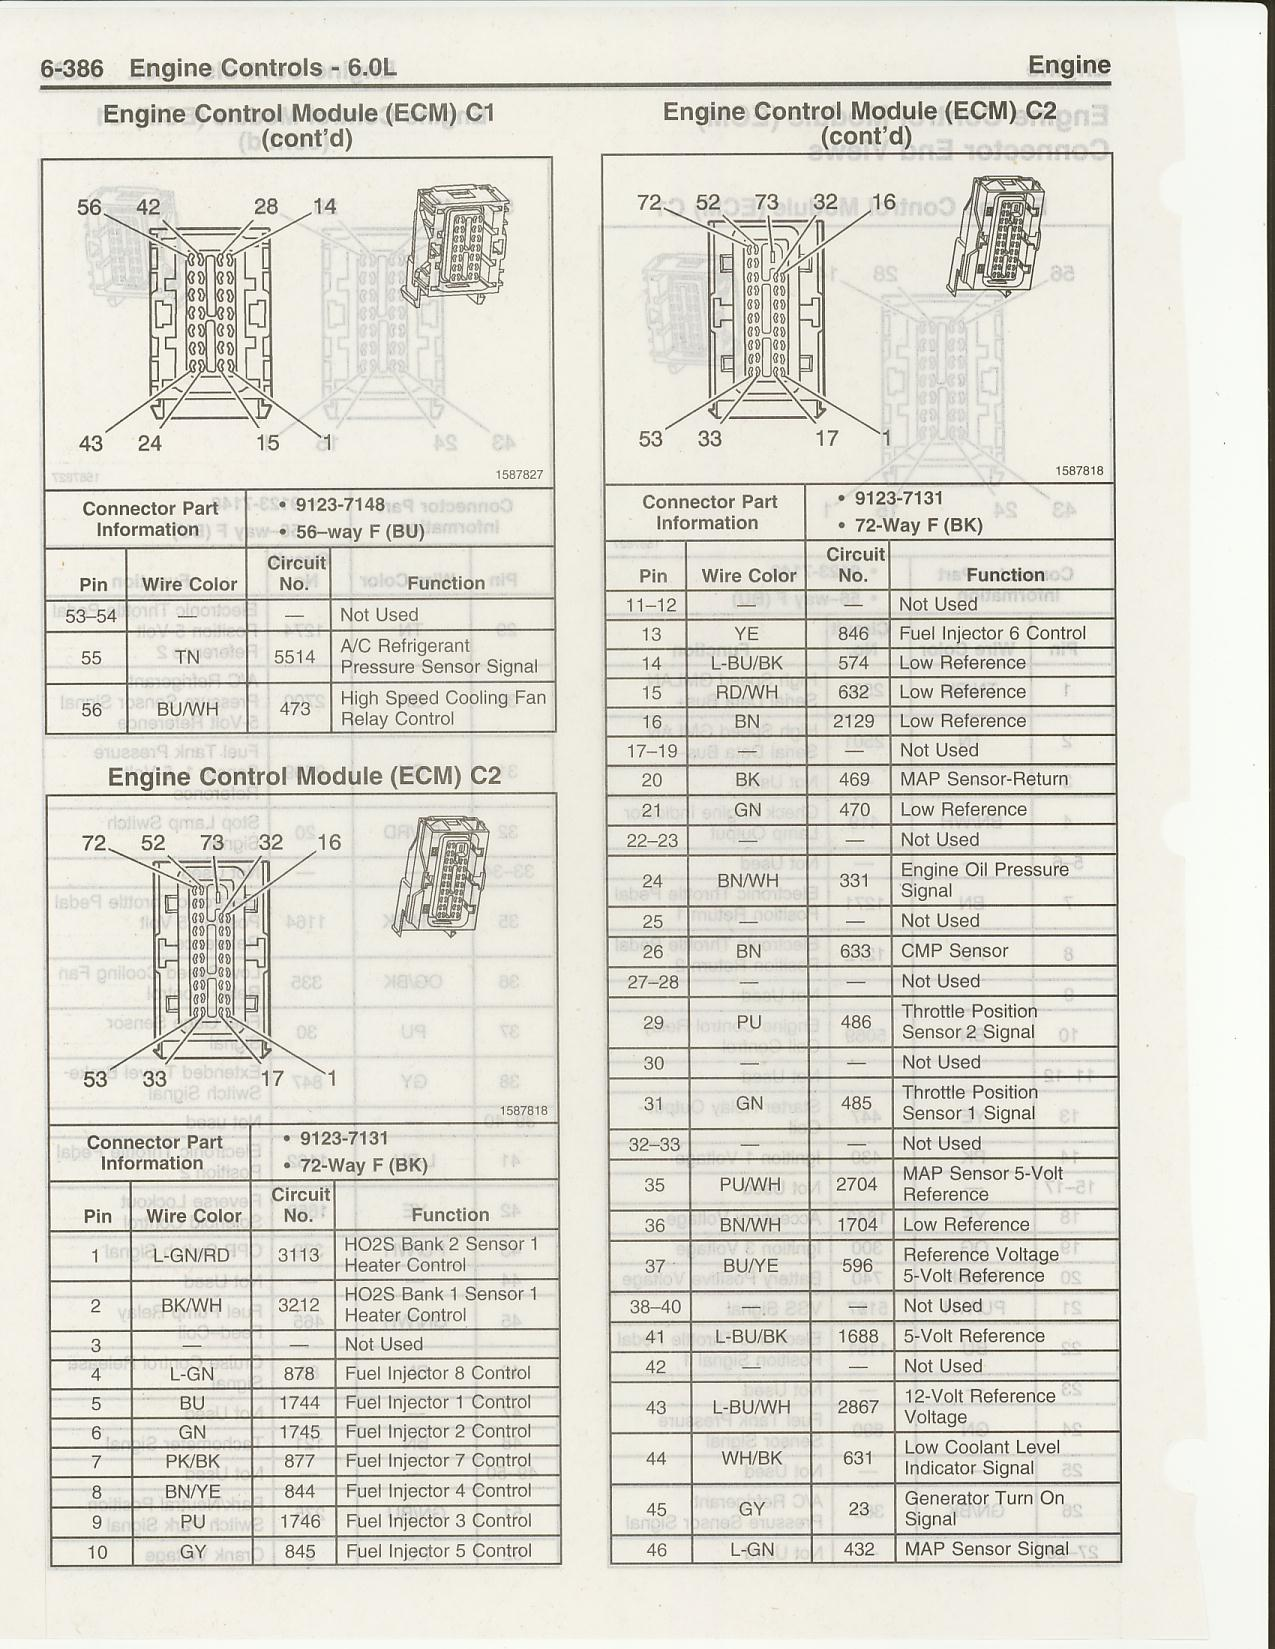 Ecm Motor Wiring Diagram Chevrolet S Pinouts And Diagrams Page 4 Ls1tech Camaro Firebird Ls2 C1 C2